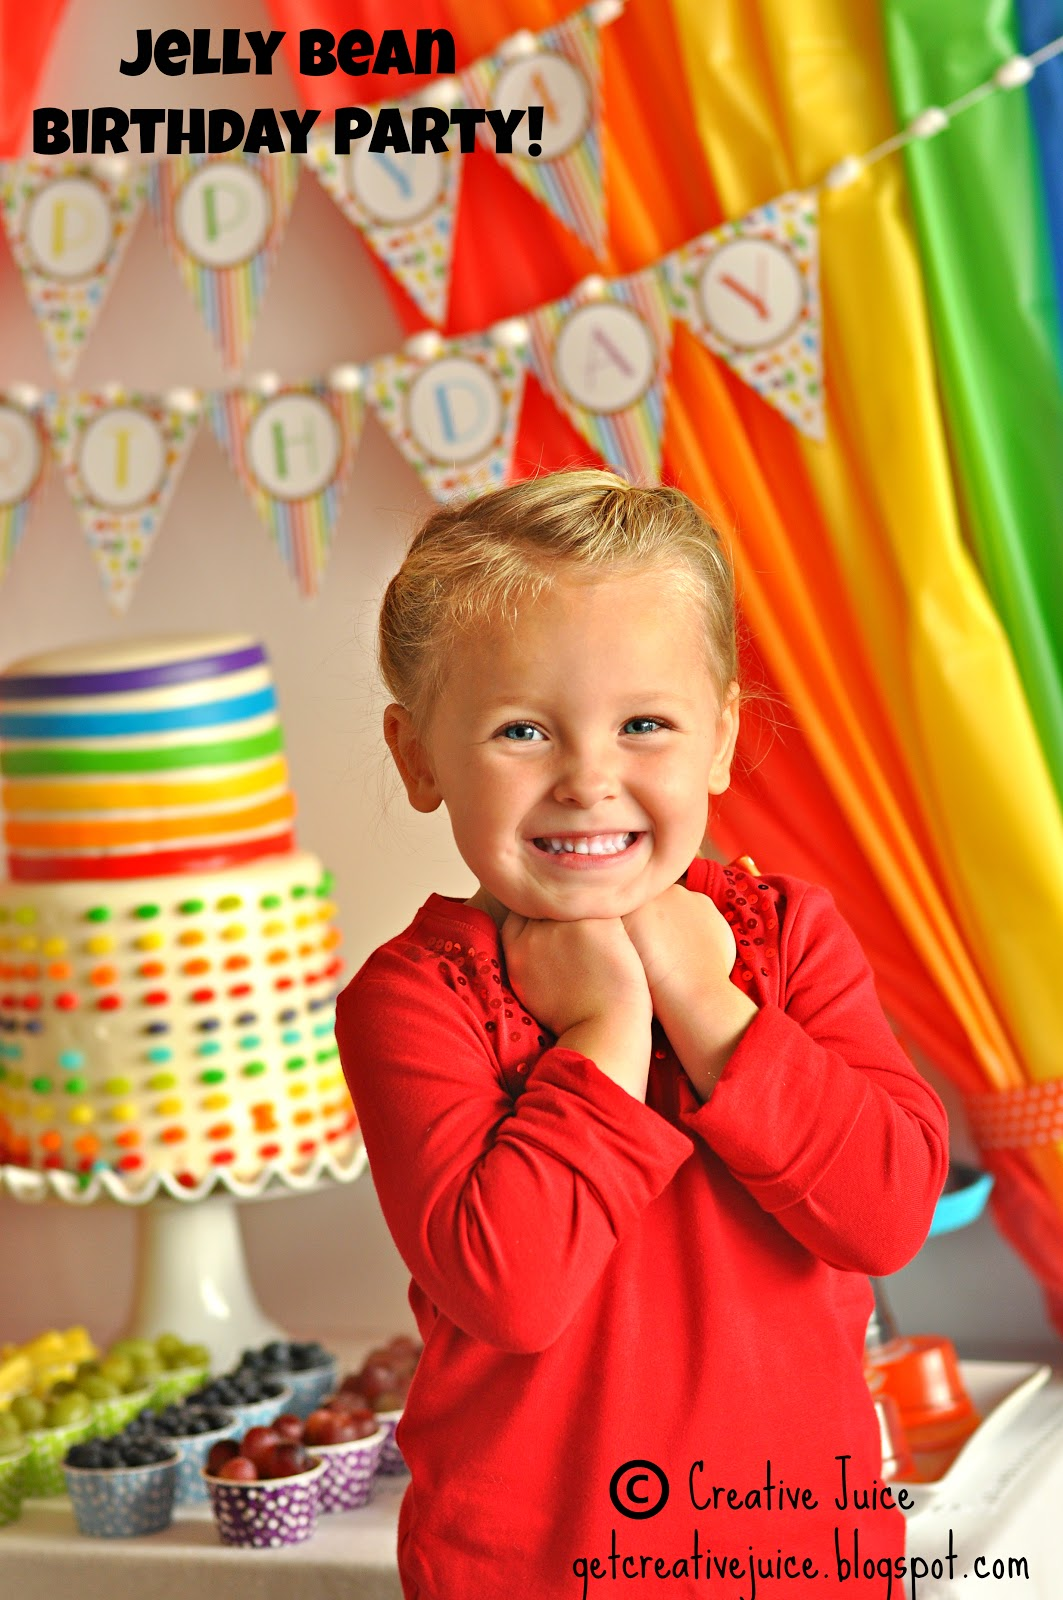 Jelly Bean Birthday Party Ideas -  via BirdsParty.com